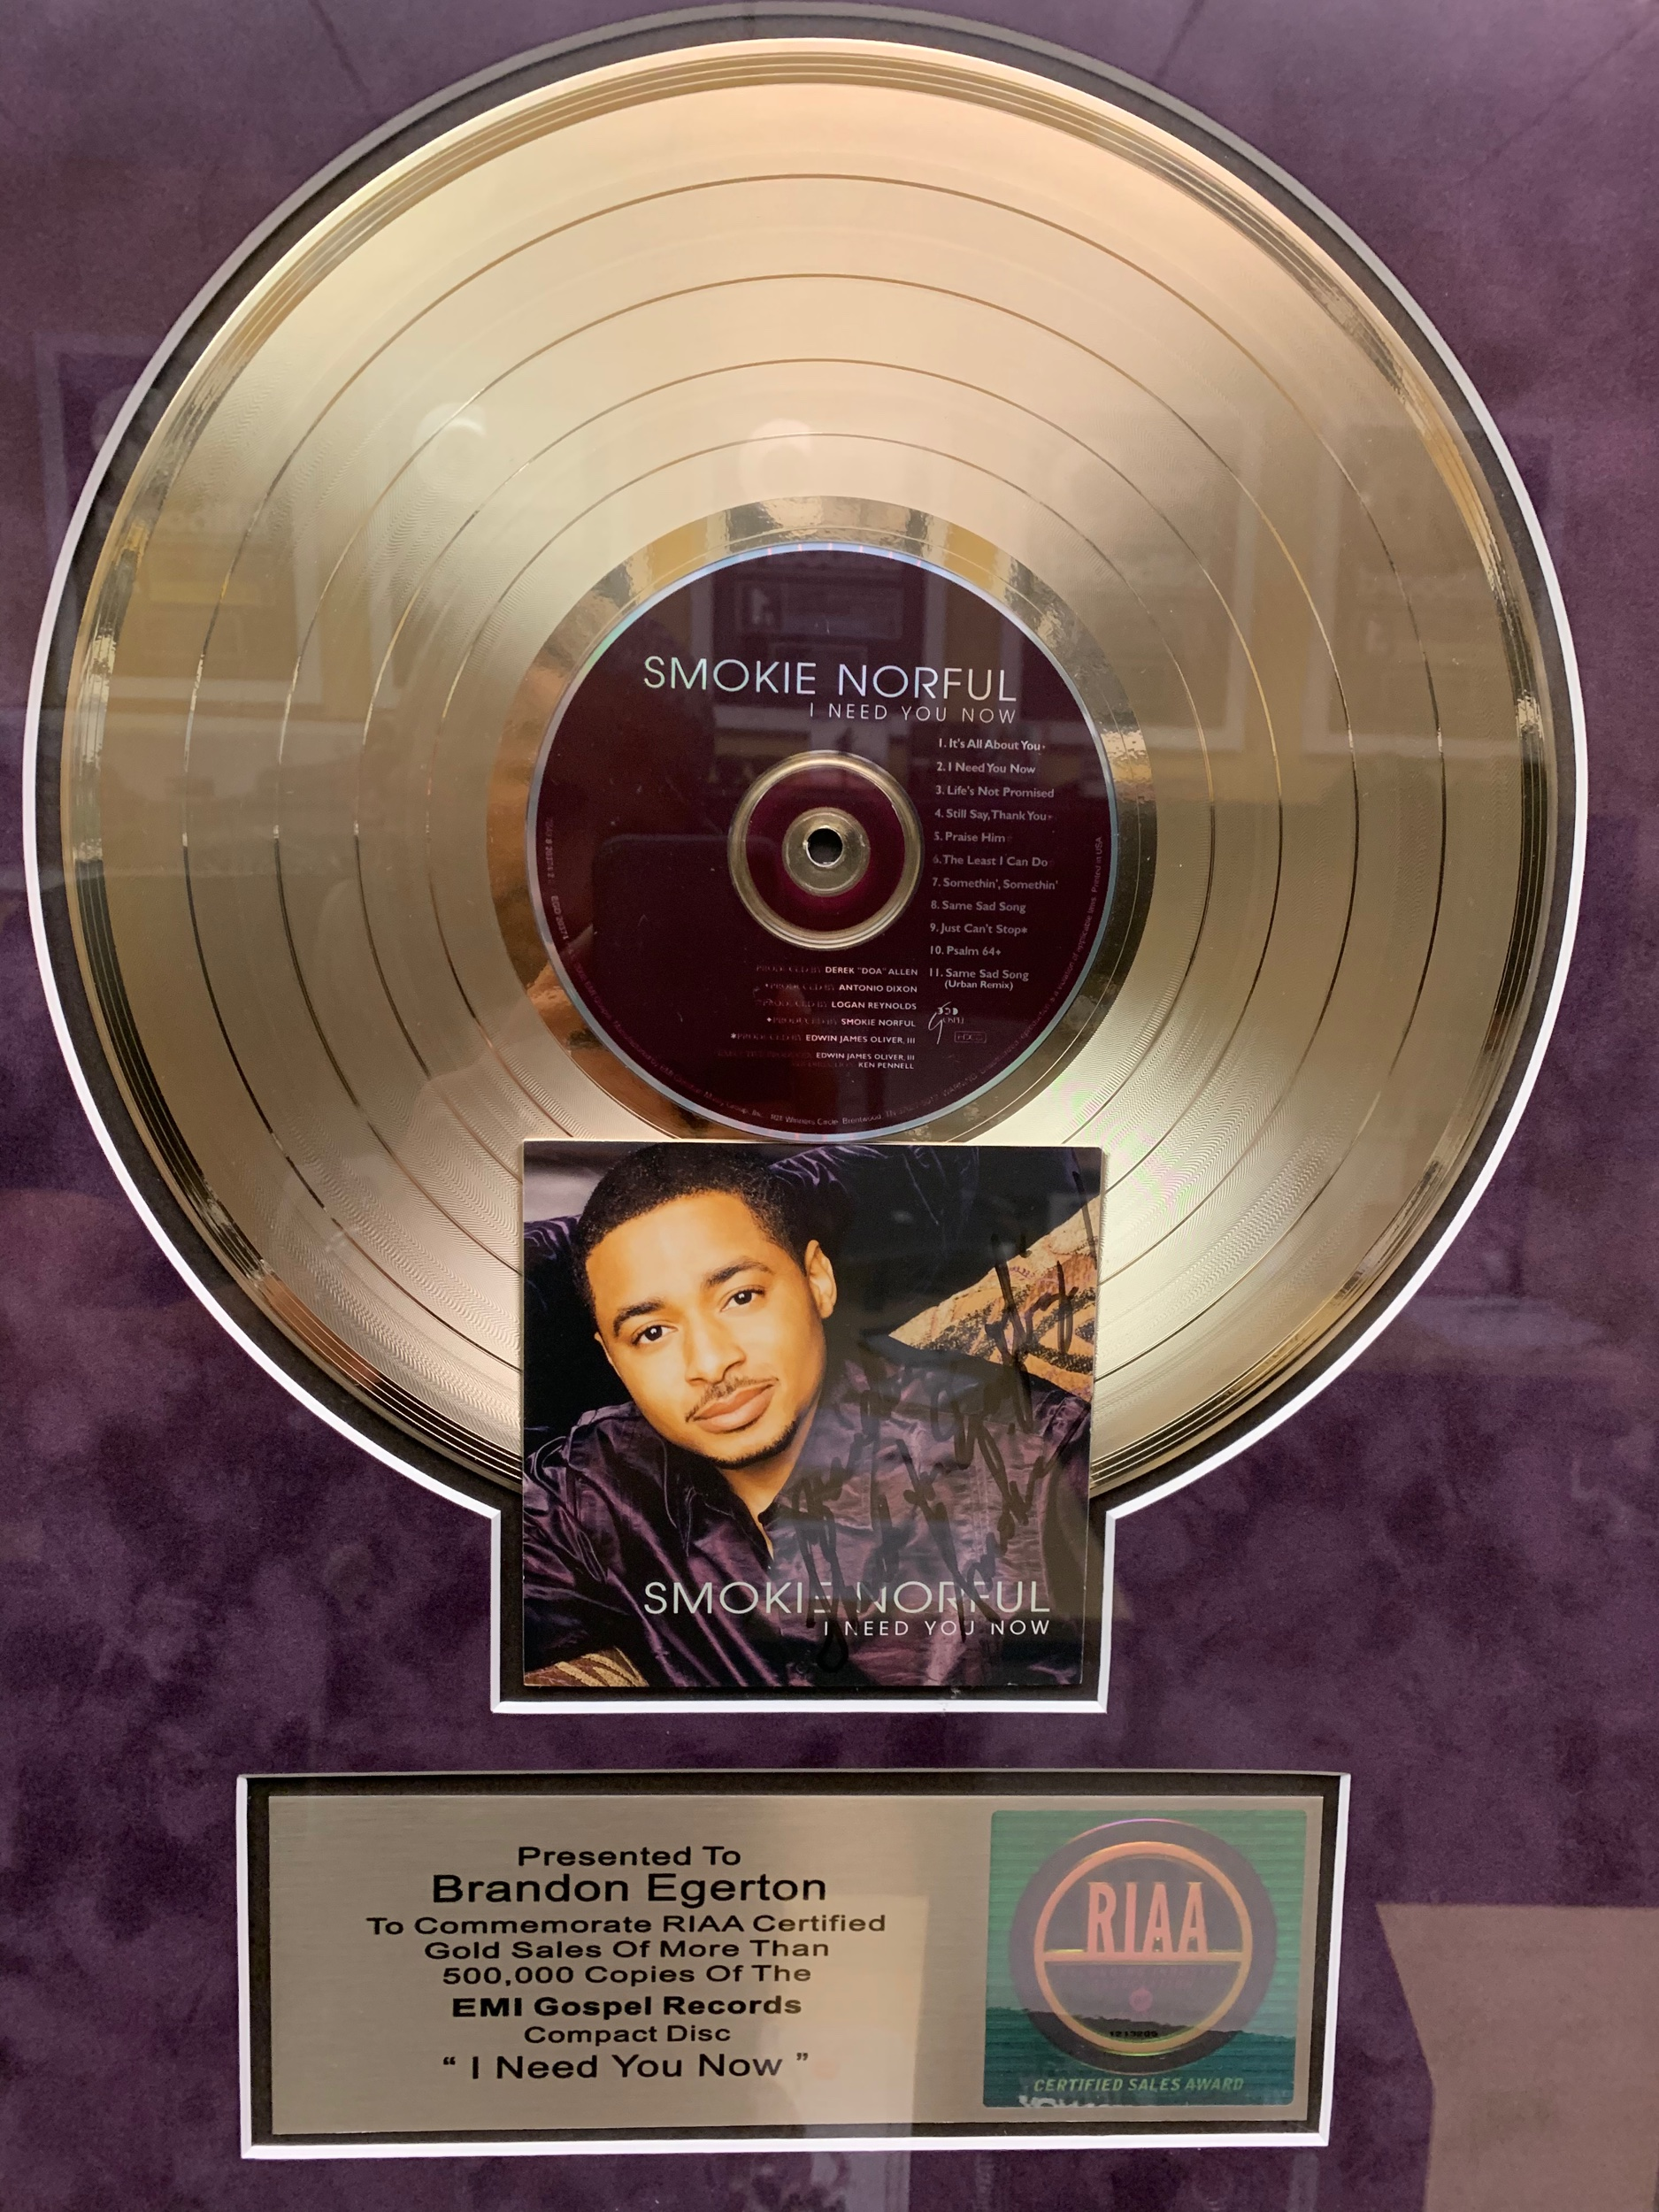 Gold/Platinum Selling - - CeCe Winans, Alabaster Box – Gold - Smokie Norful, I Need You Now – Gold- Smokie Norful, Nothing Without You – Gold- Kierra Kiki Sheard, Let Go – International Gold-Seller in Japan- Donald Lawrence & The Tri-City Singers, Finale Act I, II DVD – Gold- Various Artists, WOW Gospel - Platinum